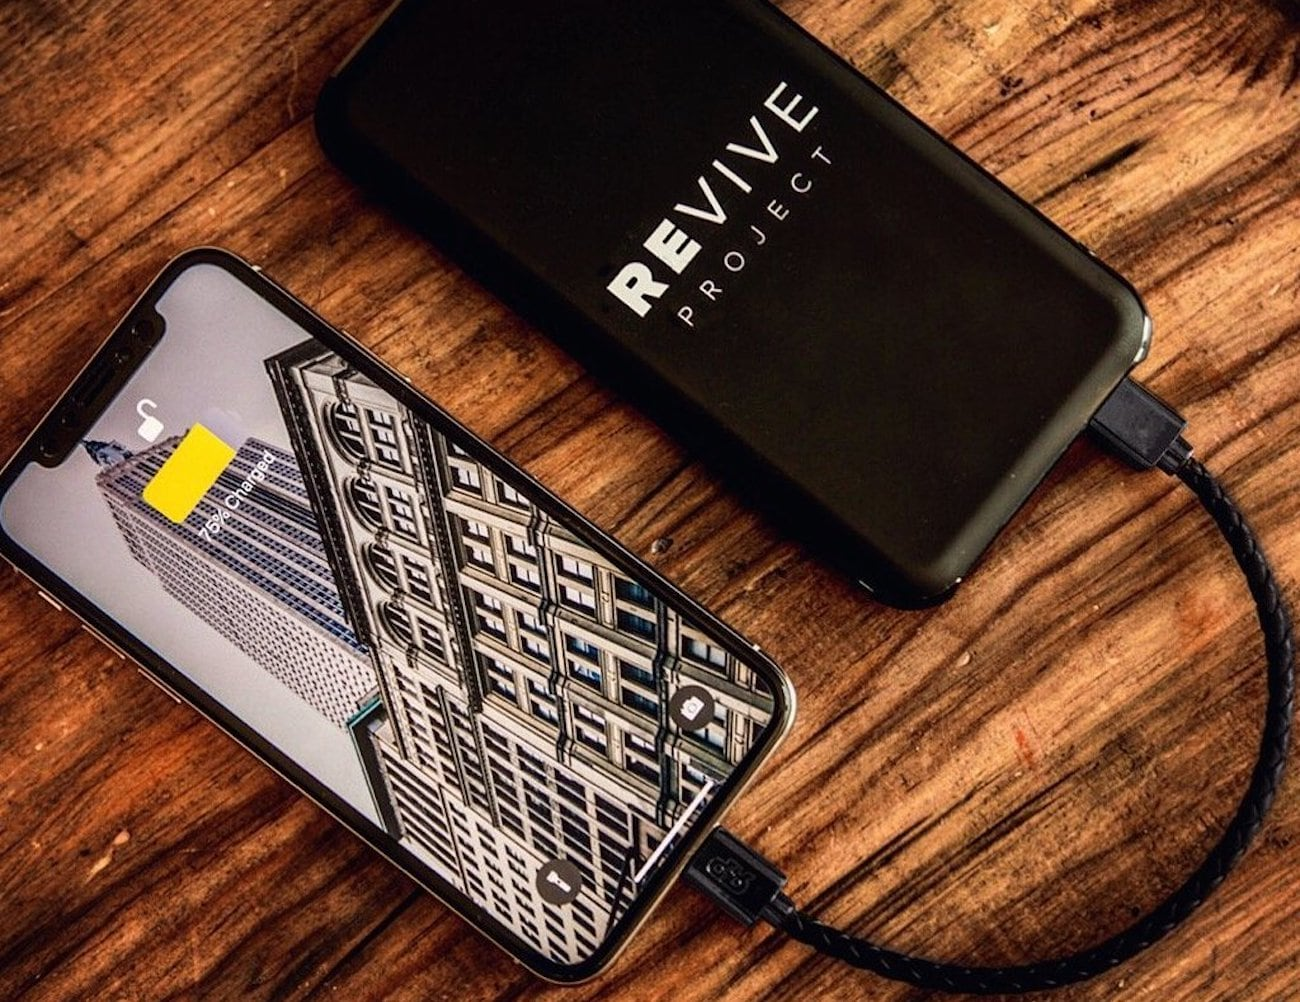 REVIVE 10,000 mAh High-Speed Power Bank